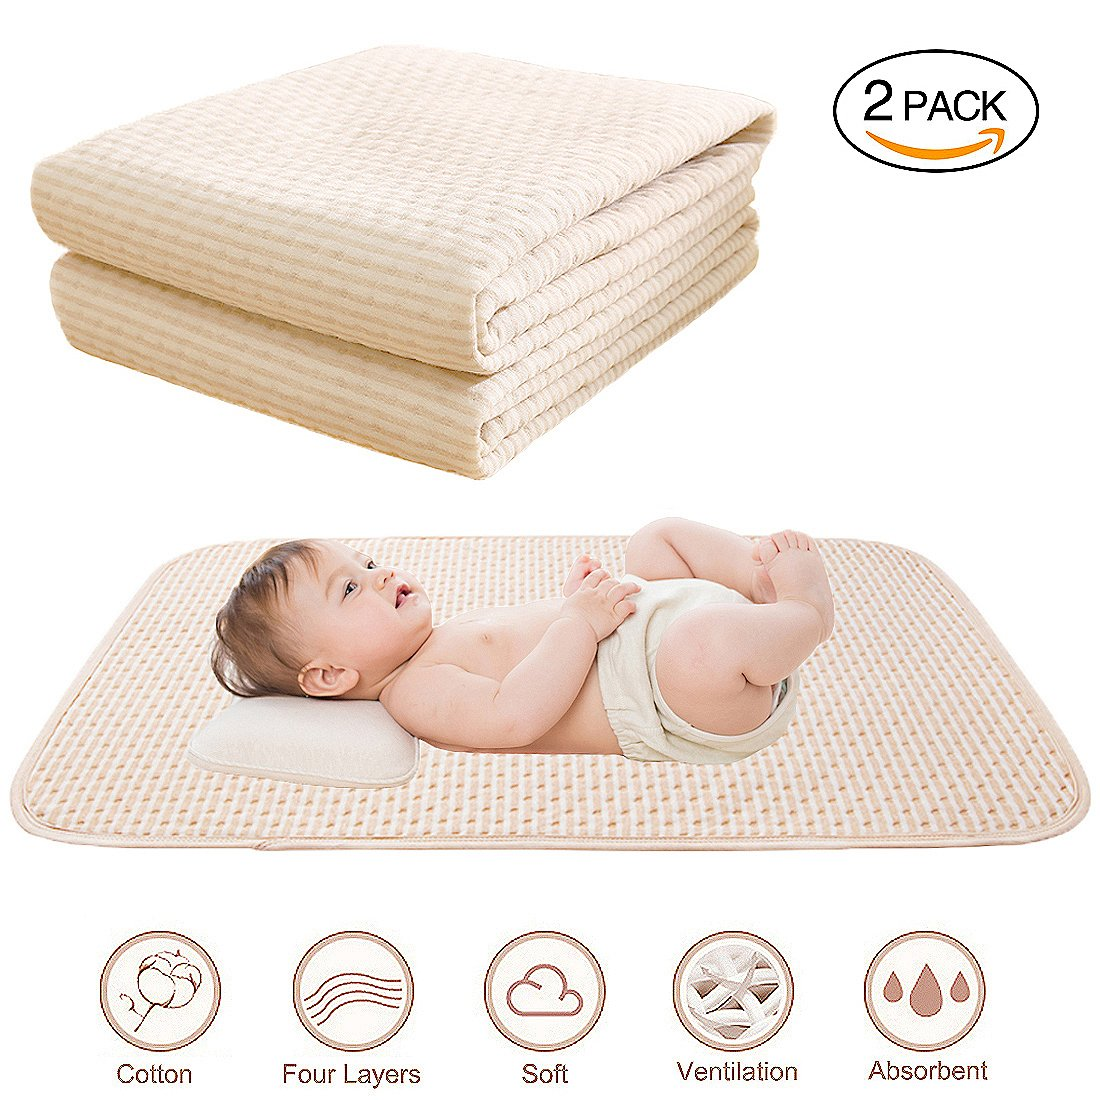 Baby Waterproof Bed Pad Reusable Incontinence Pads Washable Sheets Organic Cotton 4 Protective Layers Ultra Absorb Mattress Protector for Infants Kids, Size 39.5